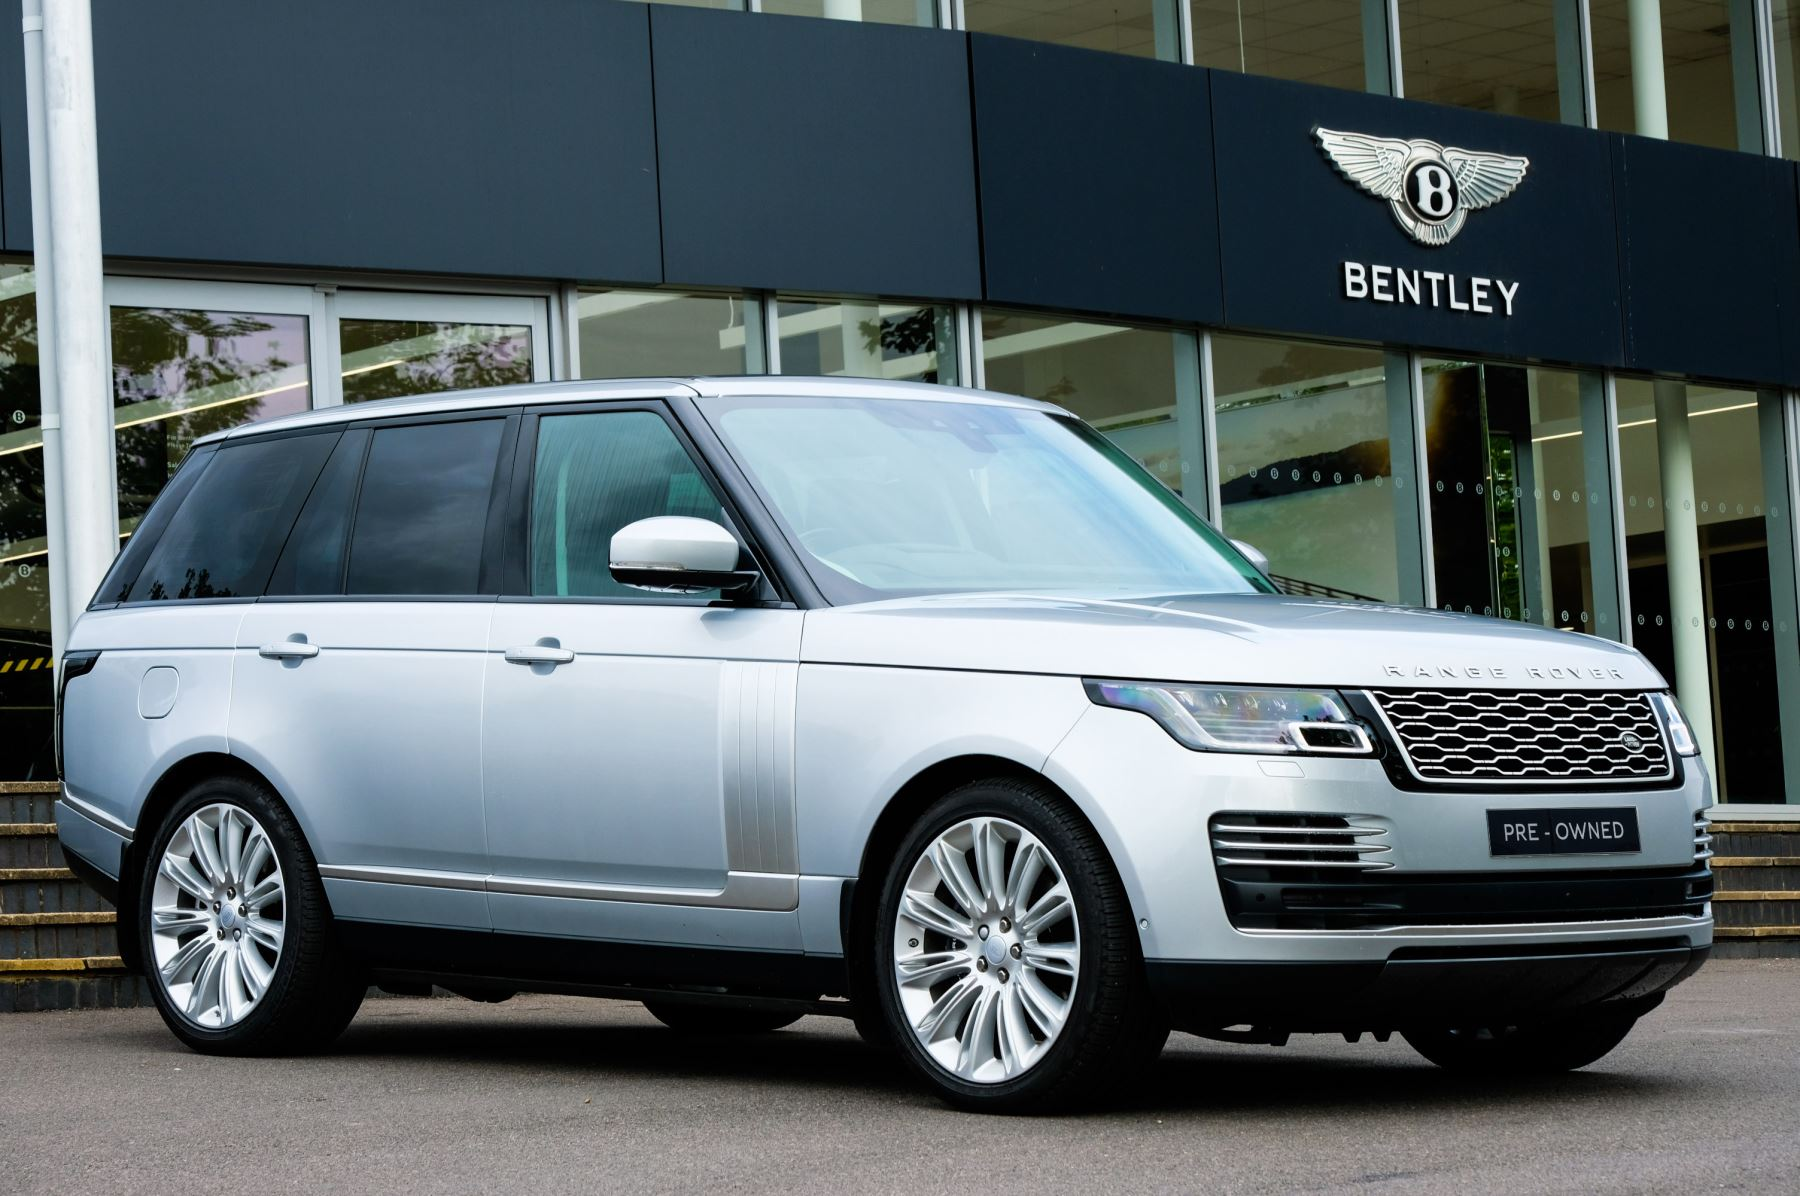 Land Rover Range Rover 5.0 V8 S/C Autobiography - 10 inch Rear Seat Entertainment Automatic 5 door Estate (2020) image